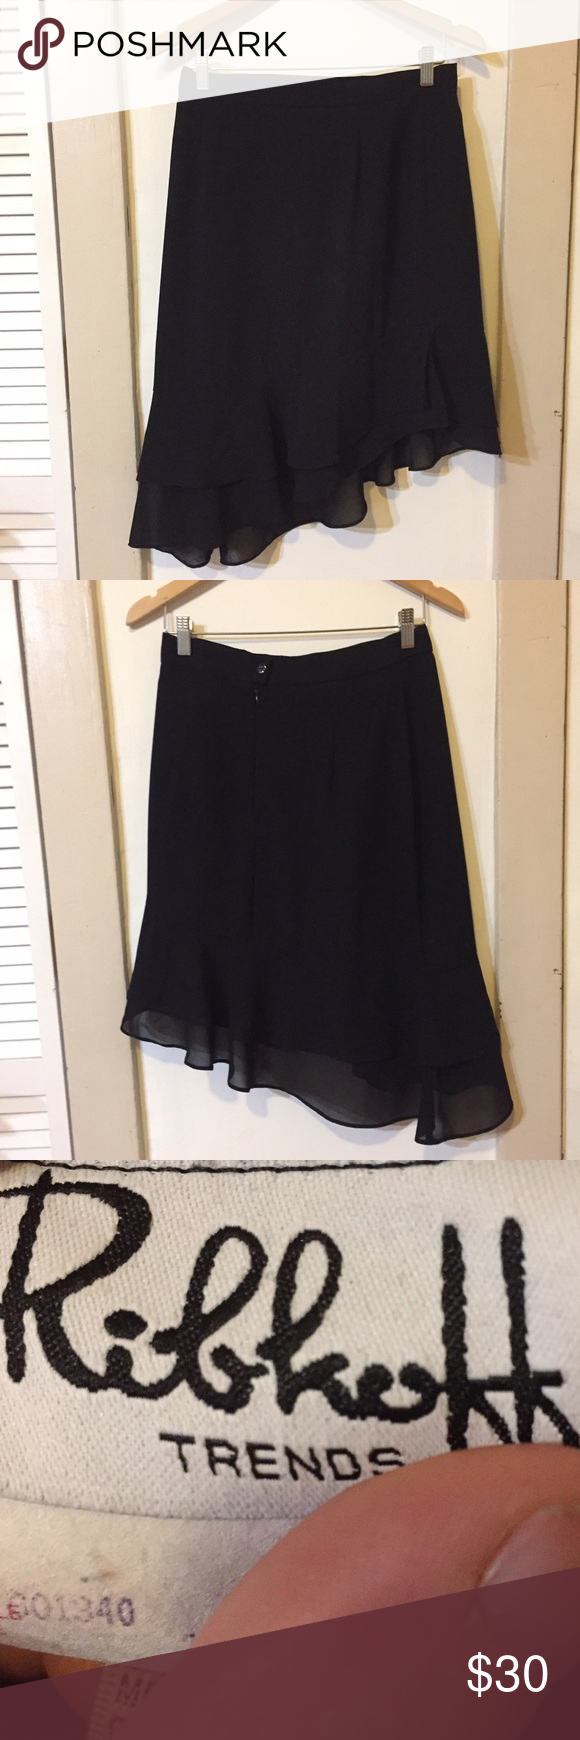 🆑 Ribkoff vintage black asymmetrical skirt FINAL PRICE! Vintage flouncy black asymmetrical skirt from Ribkoff Trends with gauzy double layer & ruffled hem. Fastens with back zip & button, perfect EUC. Ribkoff Skirts Asymmetrical